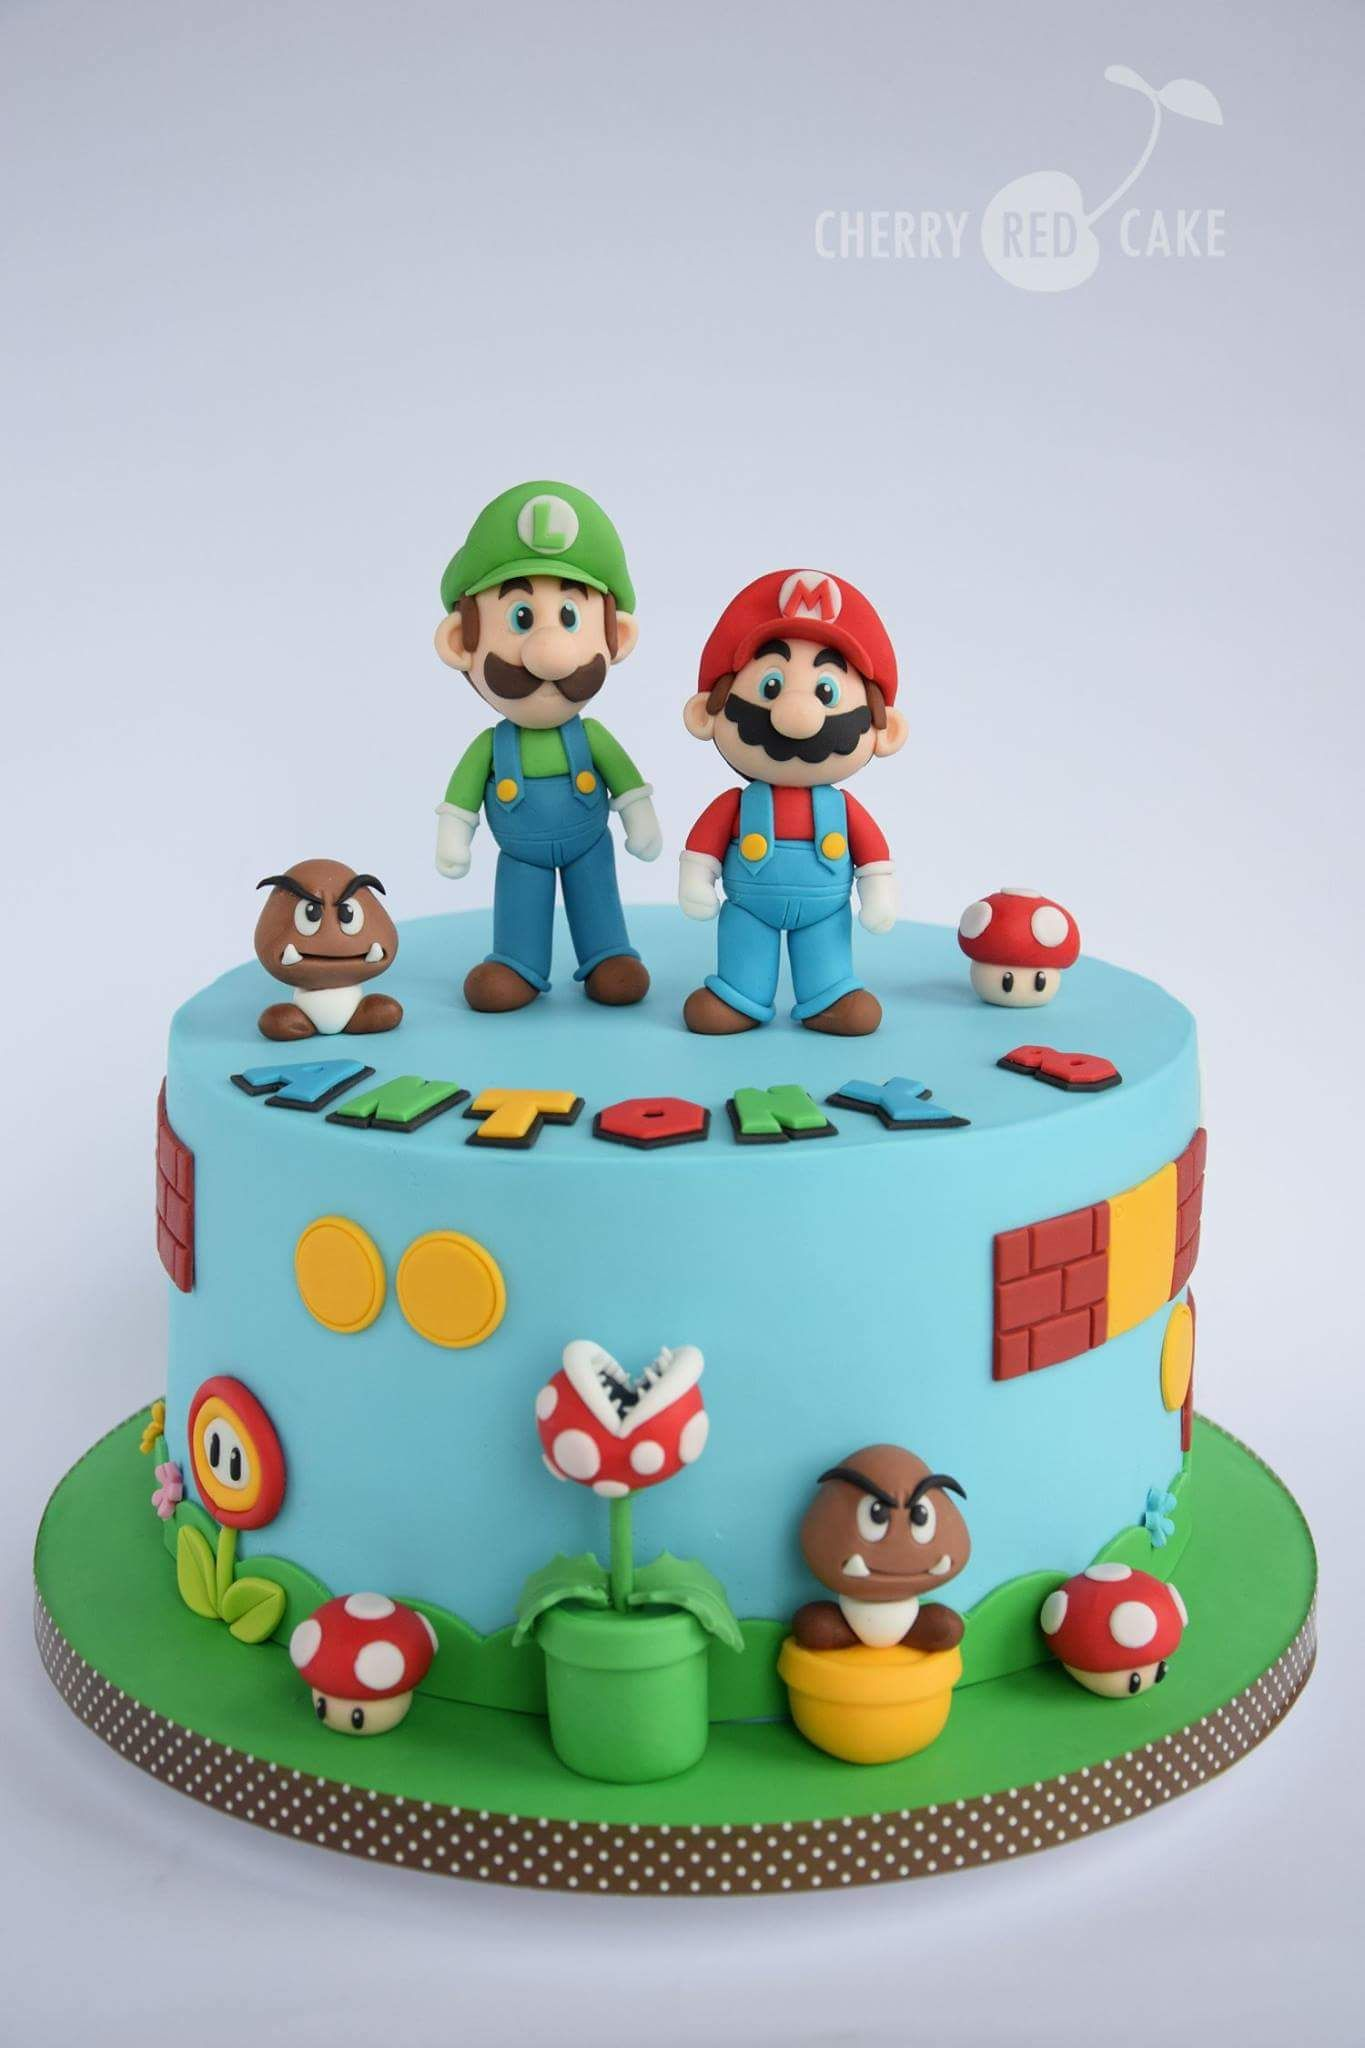 pin von olga neff auf kinder torten in 2018 pinterest geburtstag kuchen und super mario. Black Bedroom Furniture Sets. Home Design Ideas